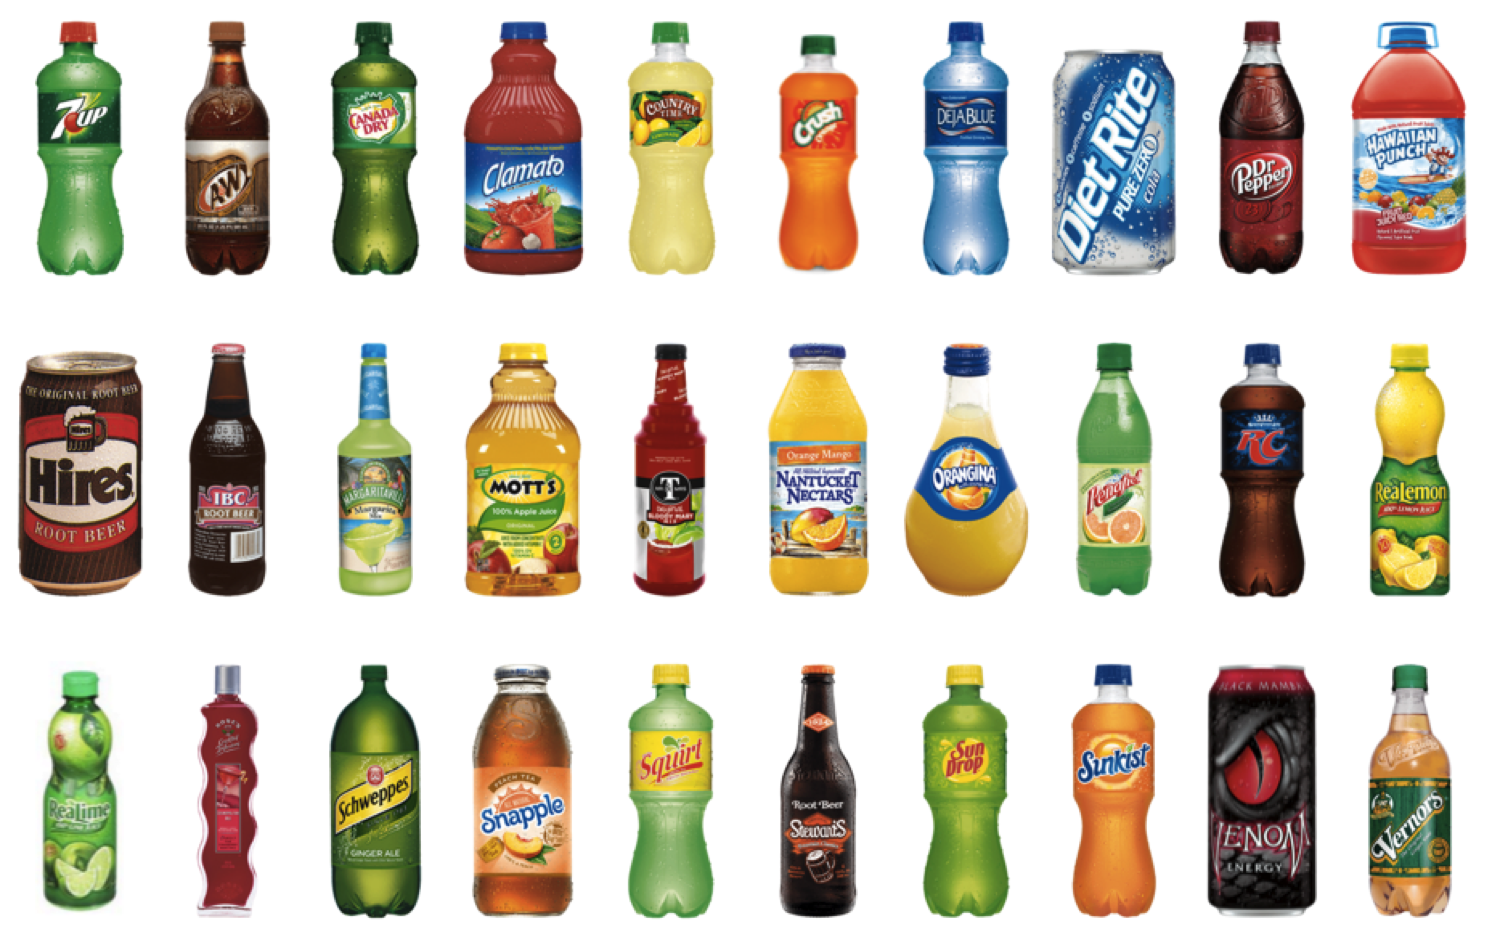 dr pepper and snapple group Dr pepper snapple group has successfully bucked the declining trend in carbonated soft drinks, contributed by a strong strategy for hispanic markets.